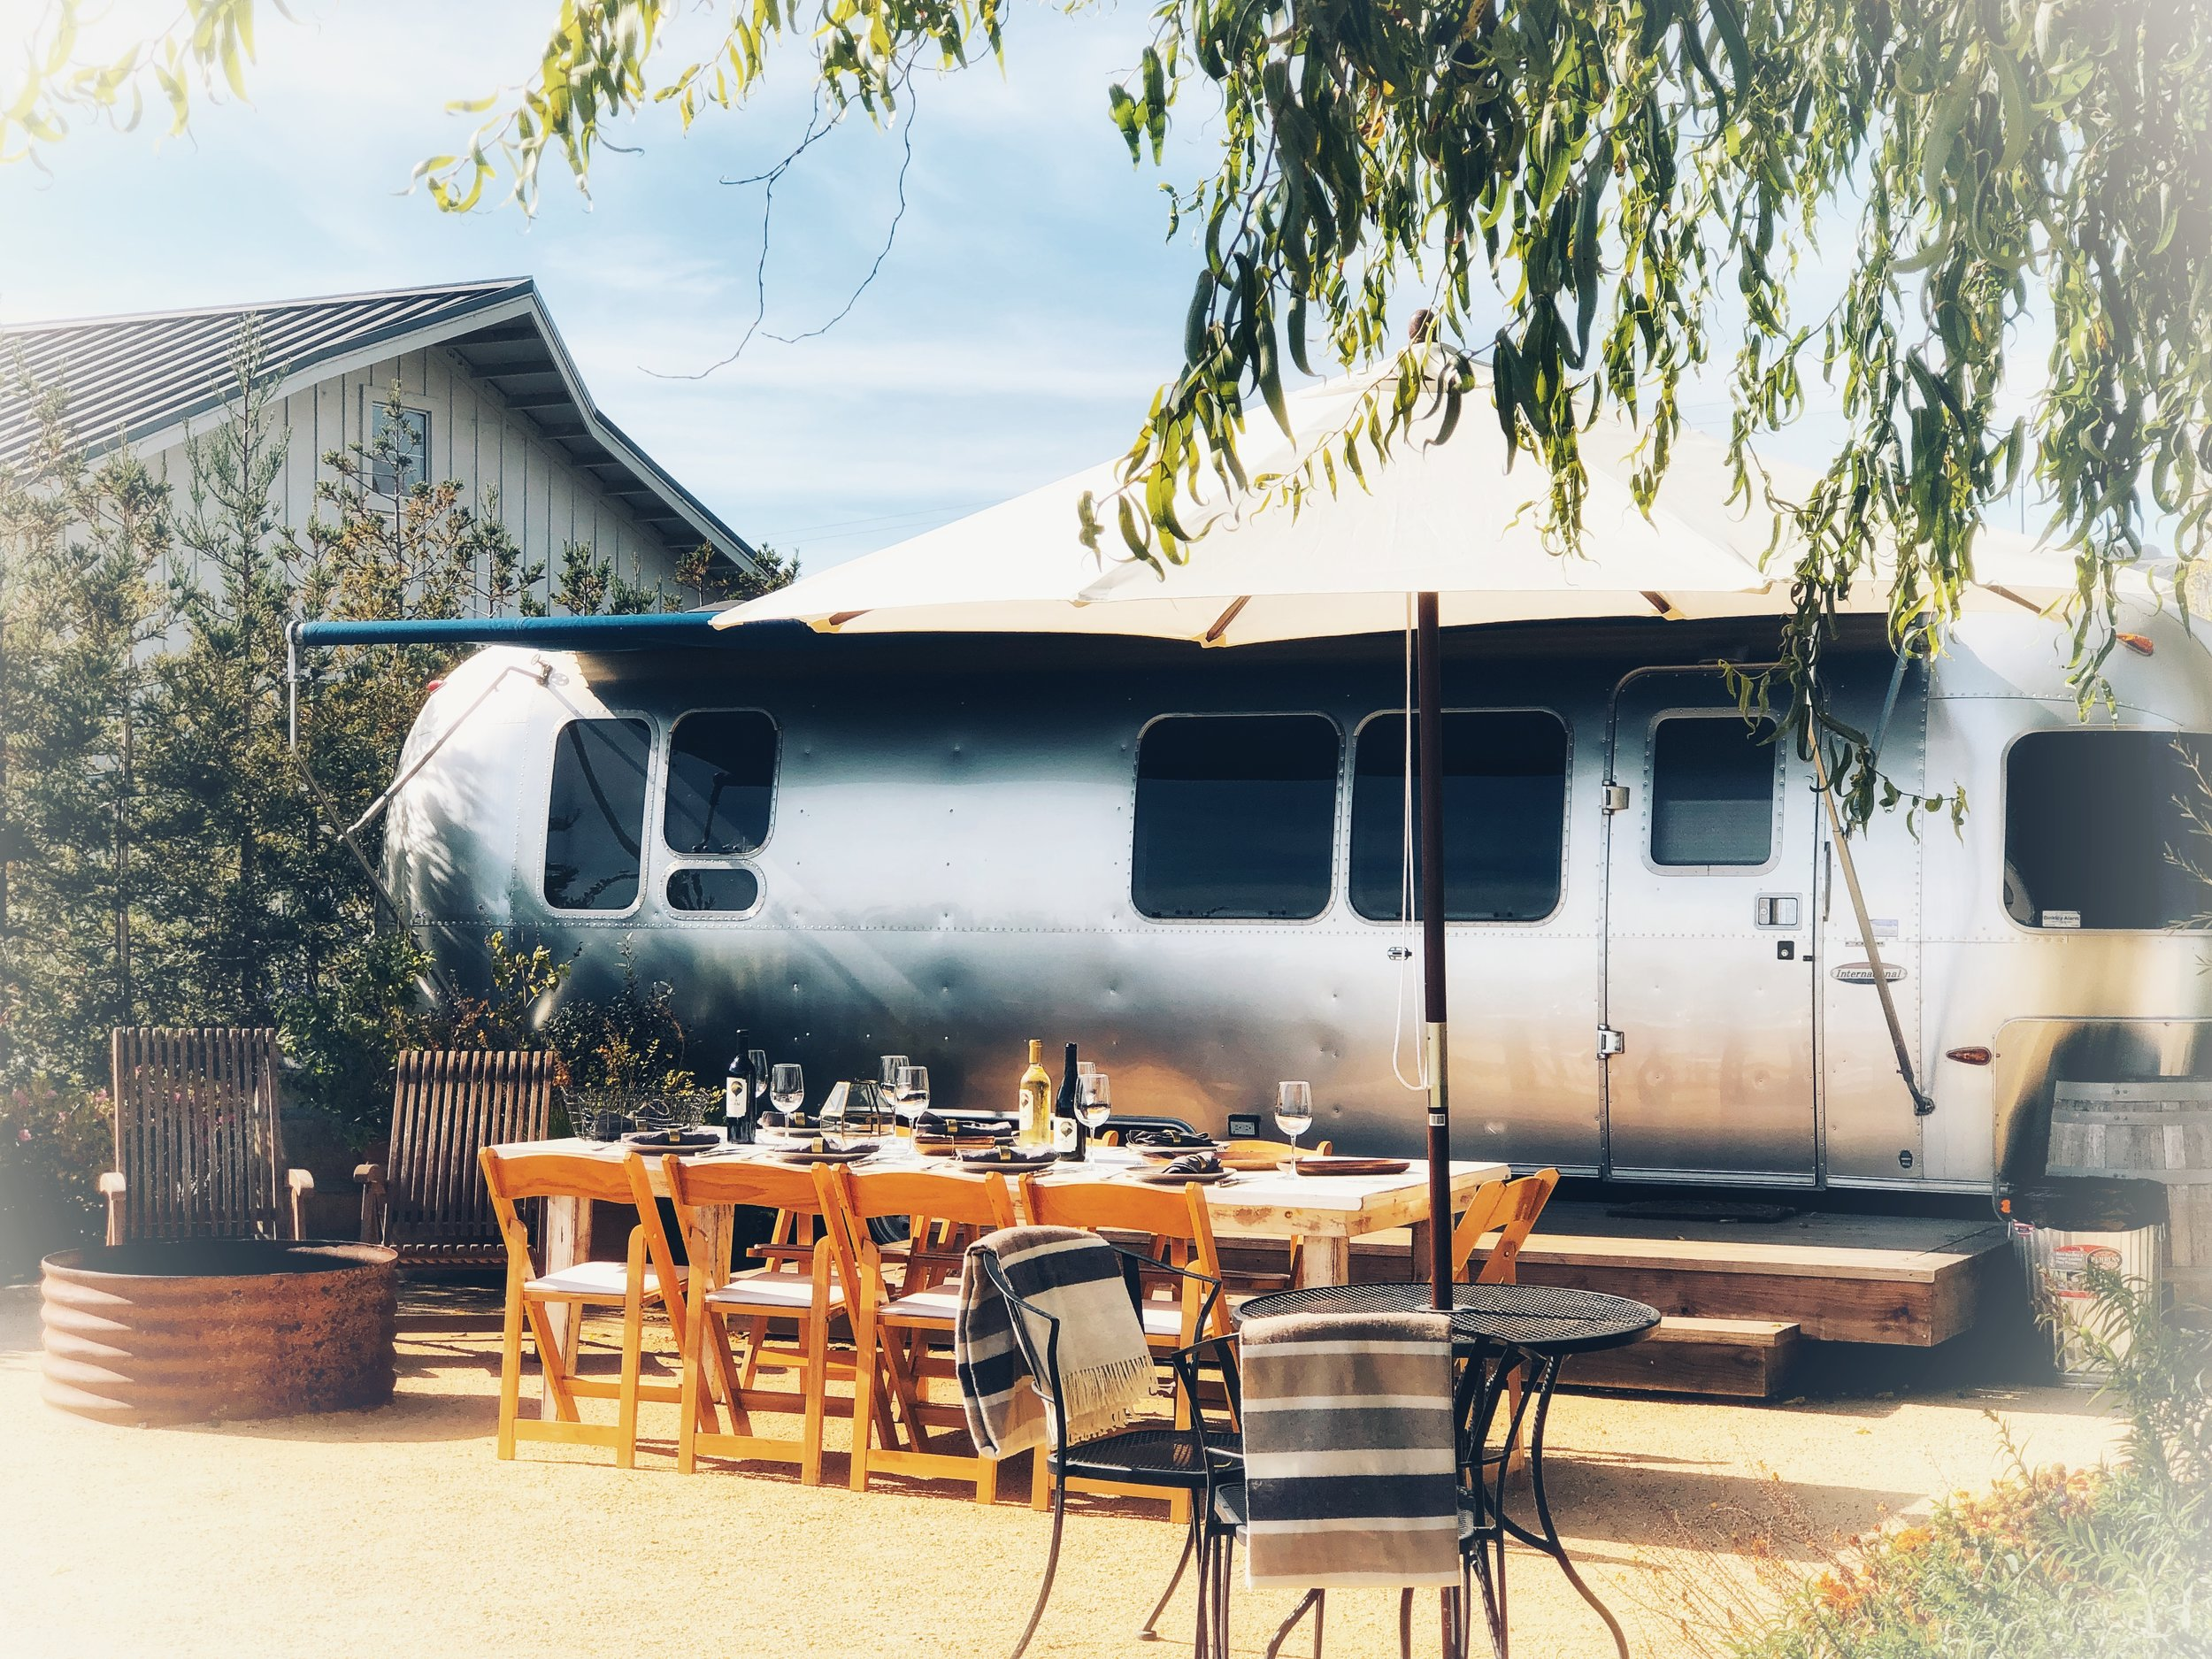 The Airstream Picnic